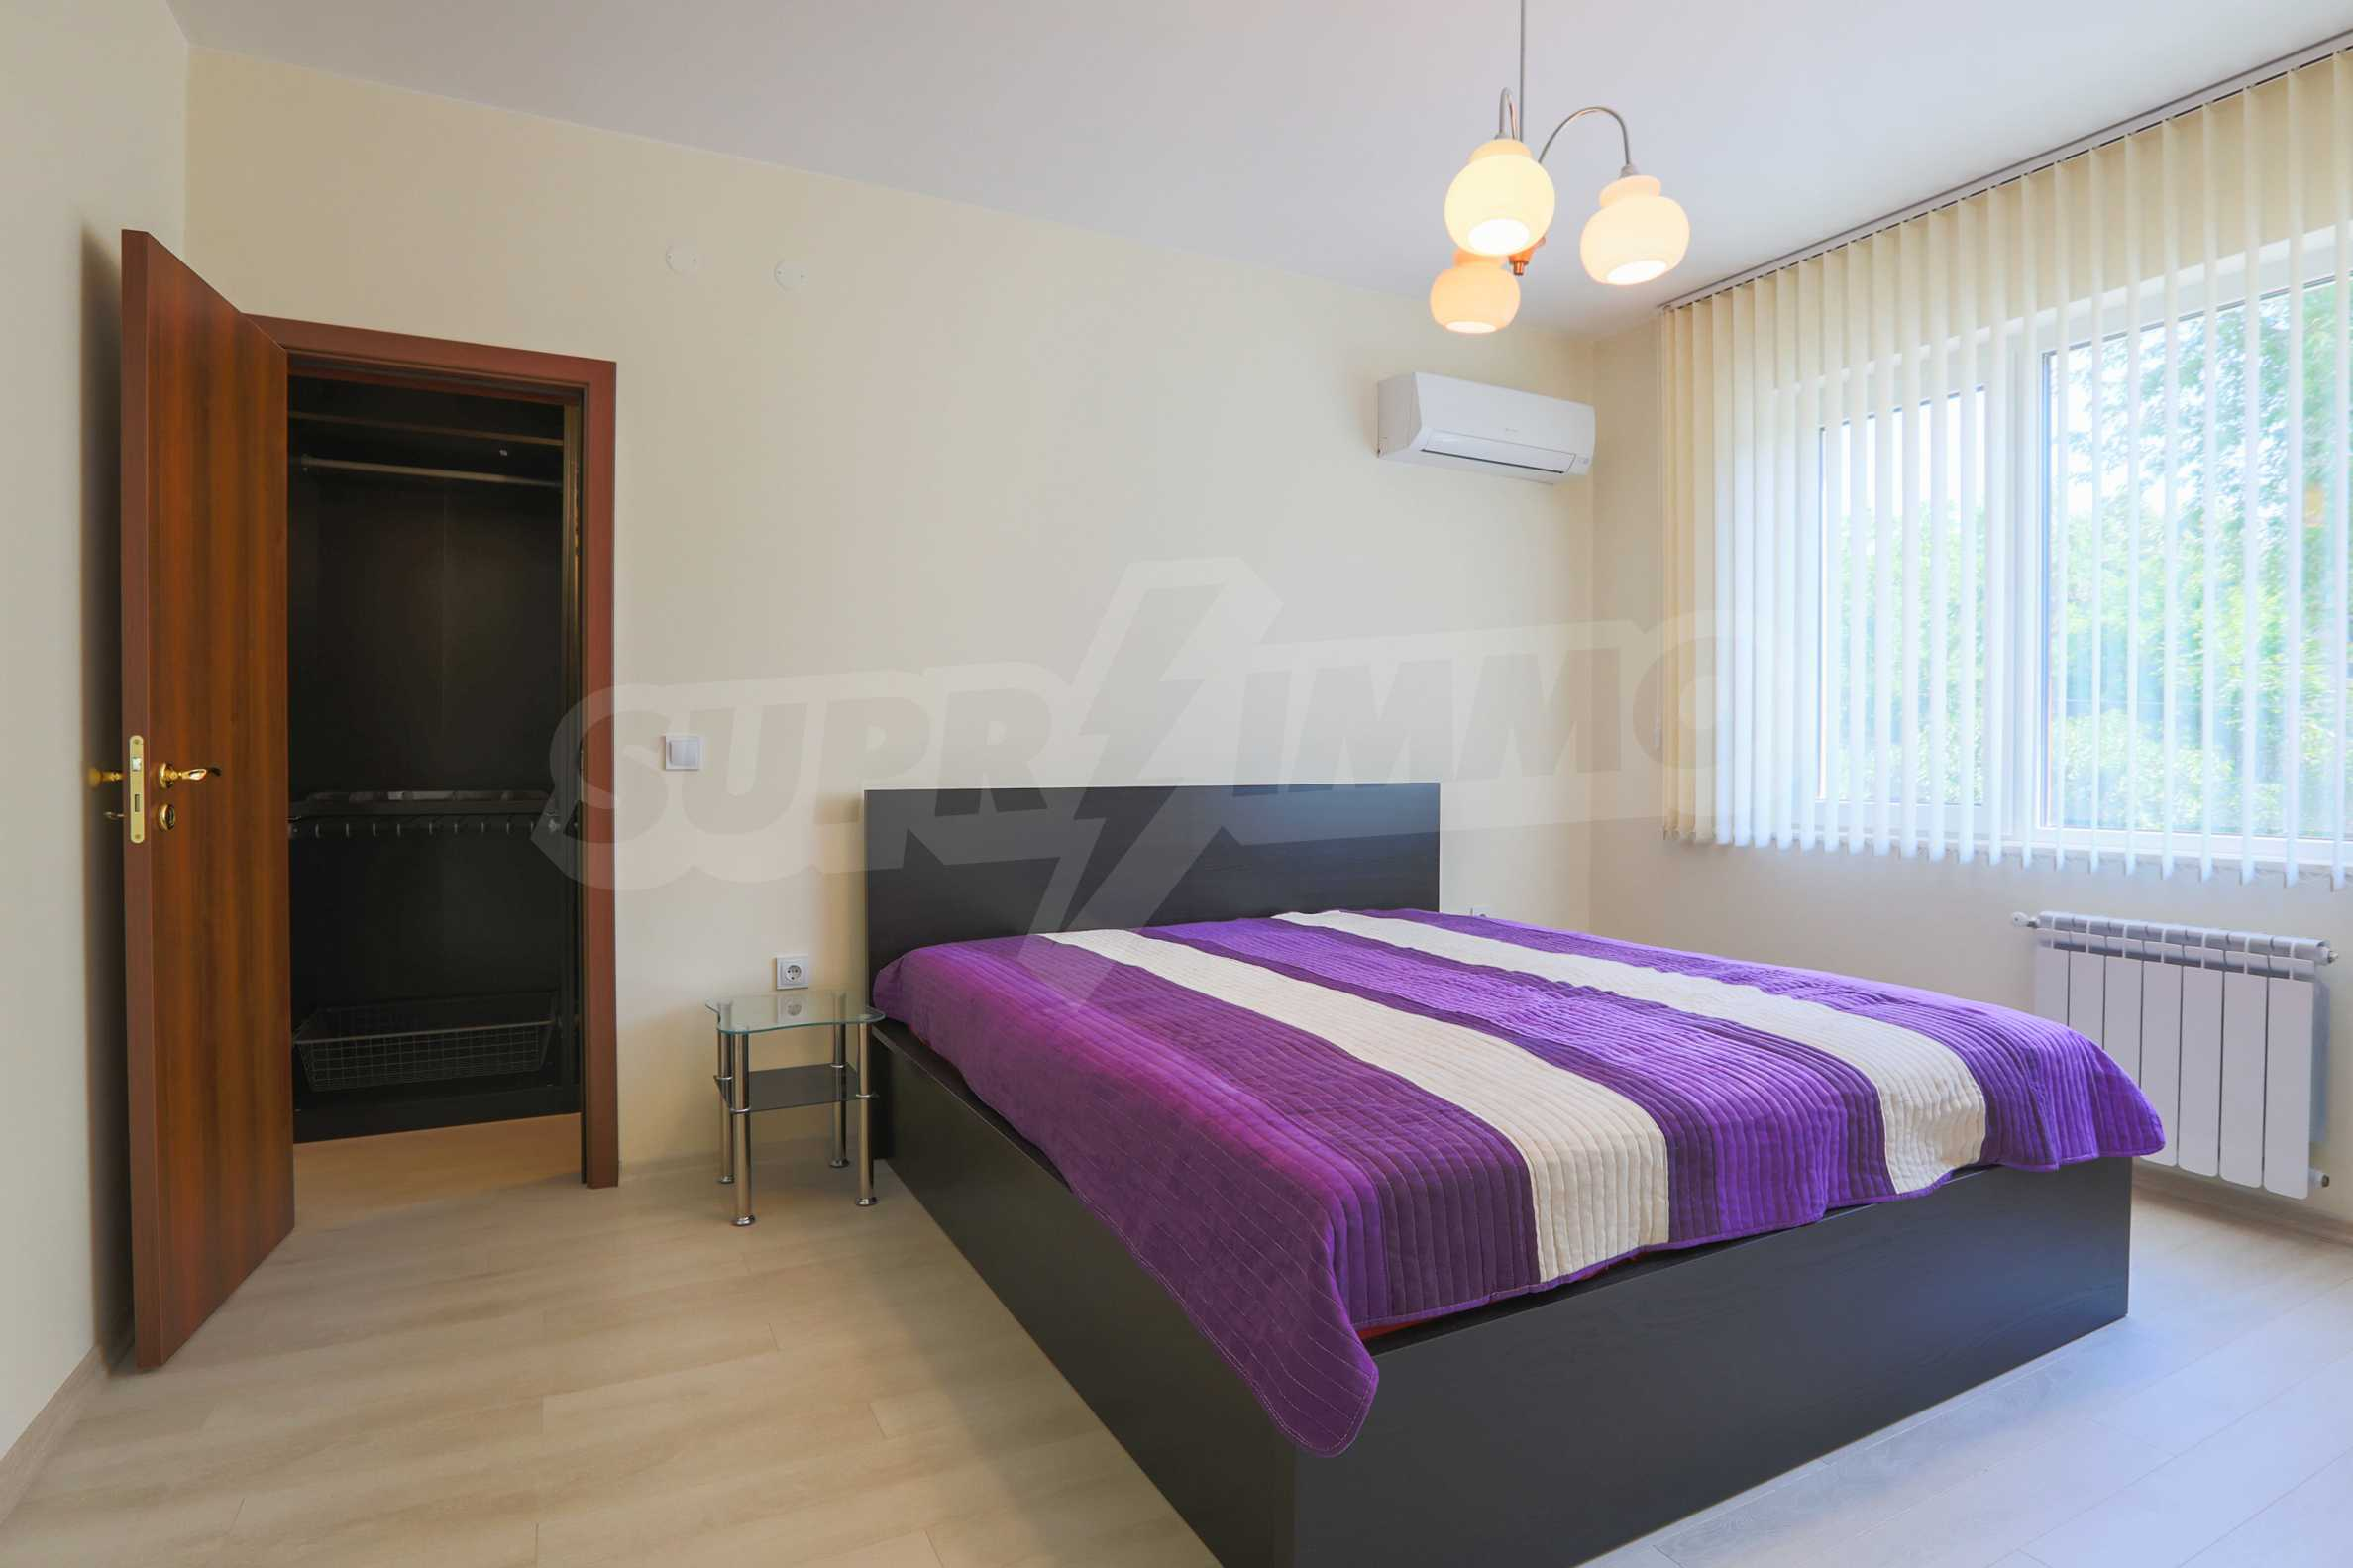 1-bedroom apartment in Sofia 9